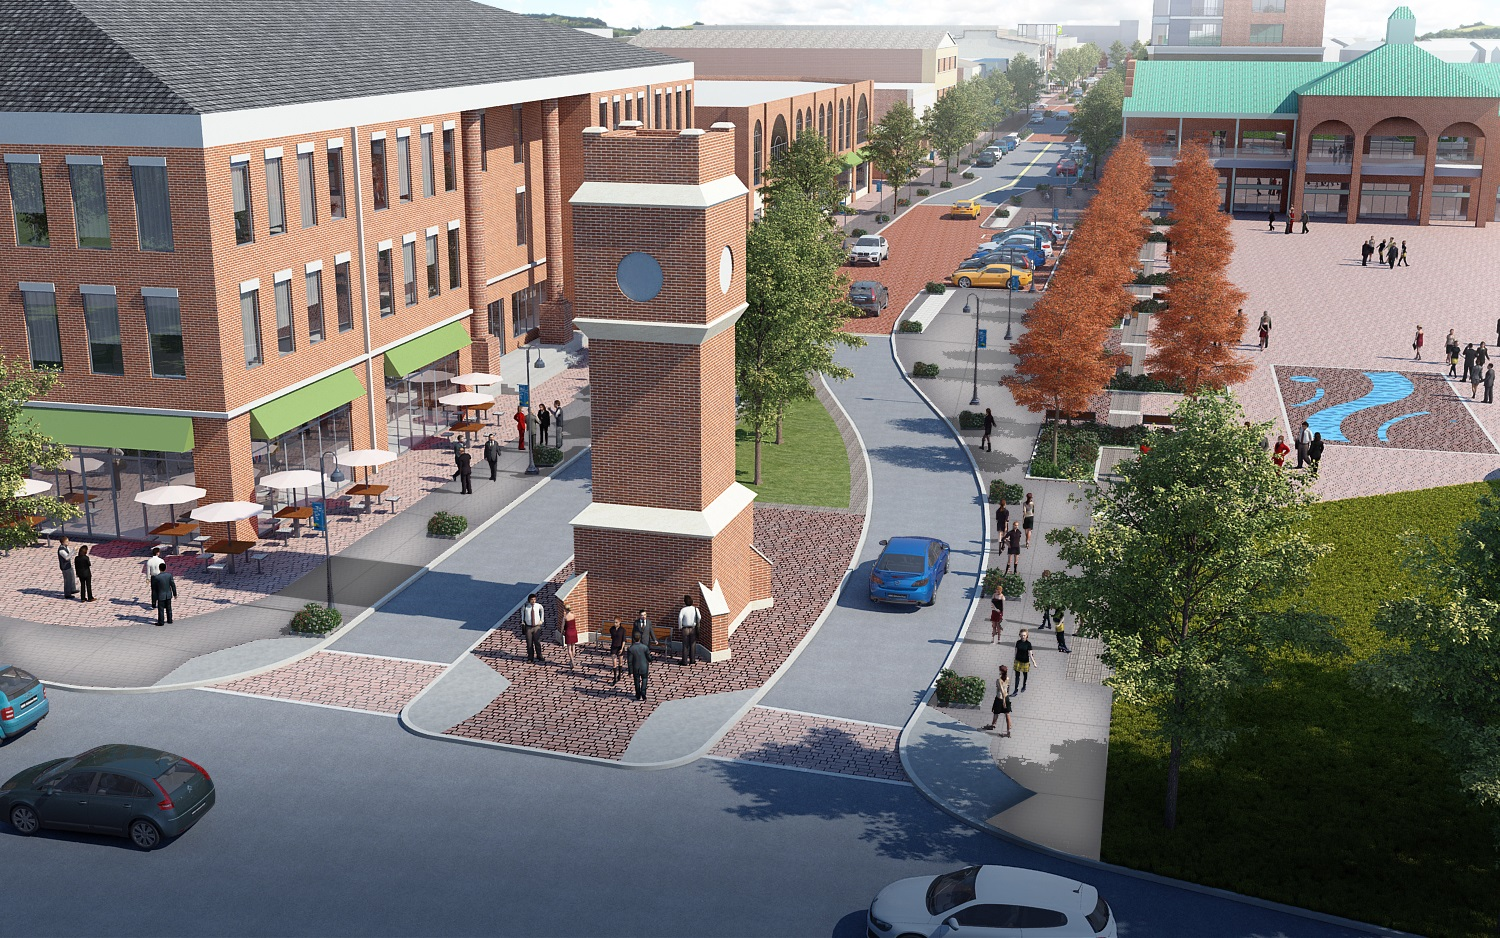 Downtown Revitalization Covers Photo : Downtown transformation city of cuyahoga falls